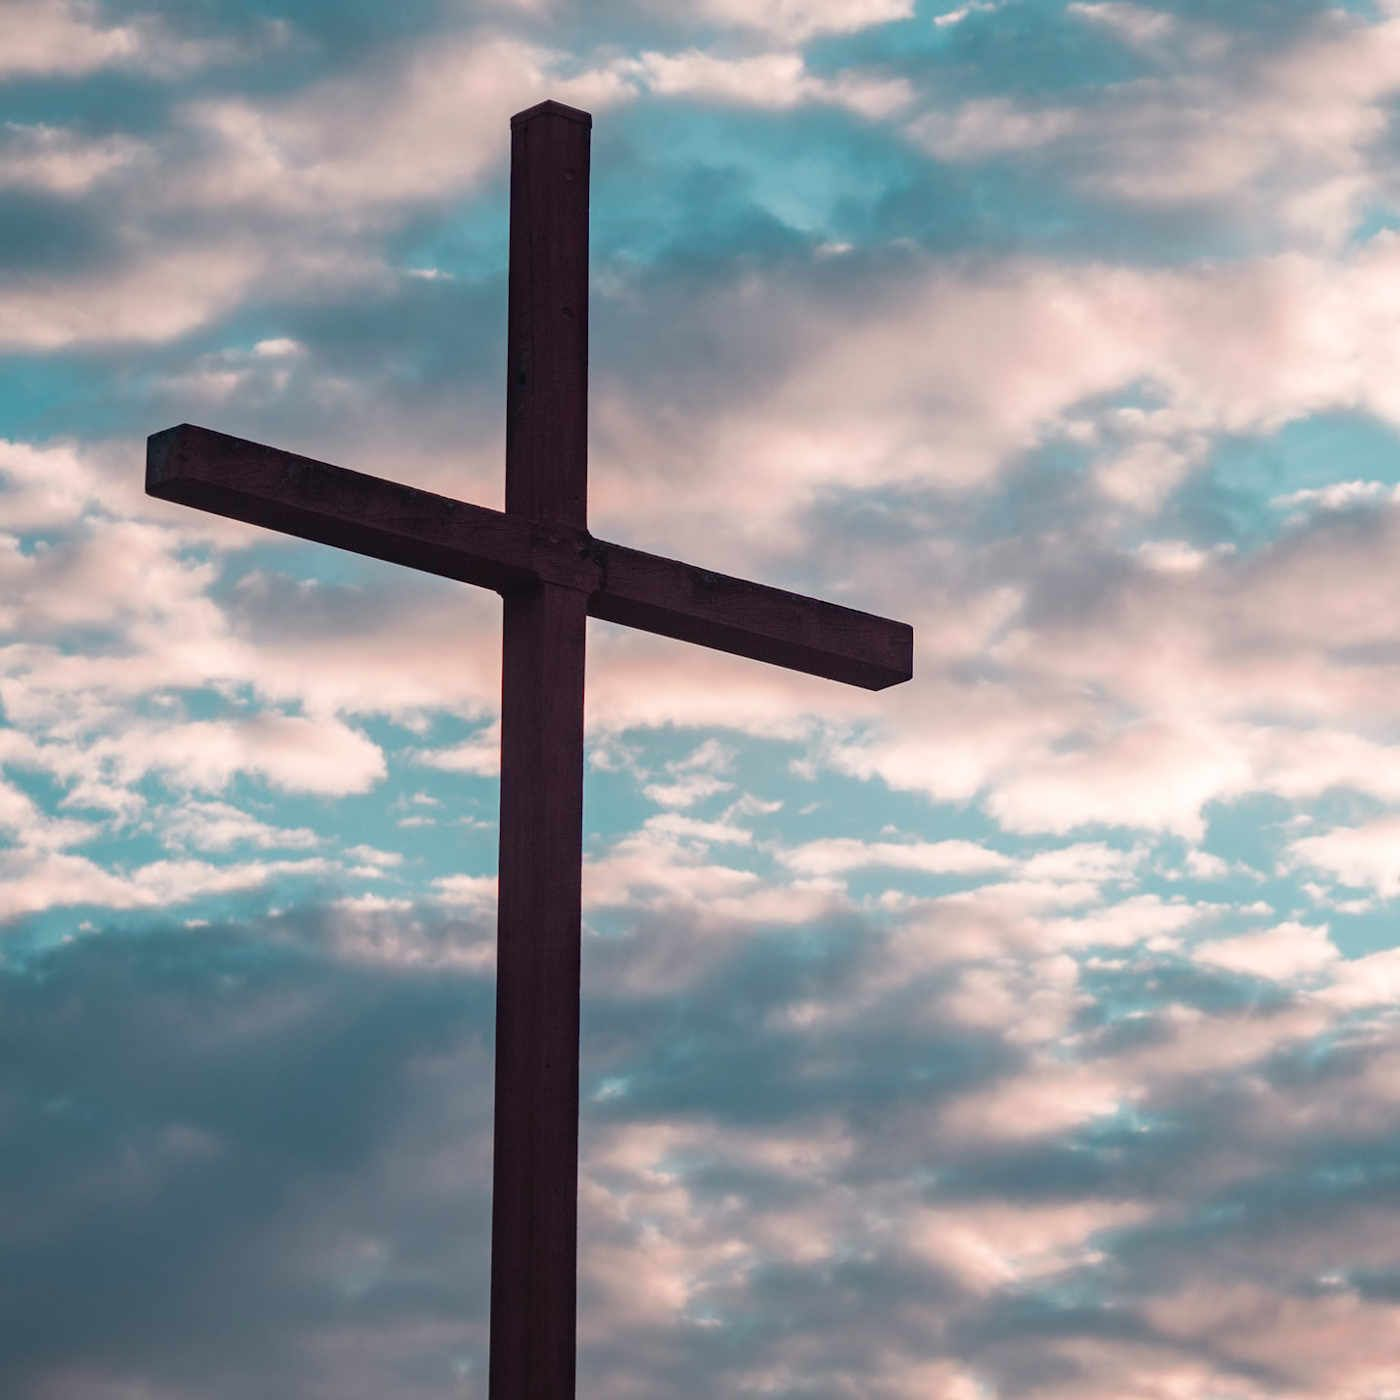 Feast of the Exaltation of the Holy Cross, September 14 - The Transforming Power of the Cross